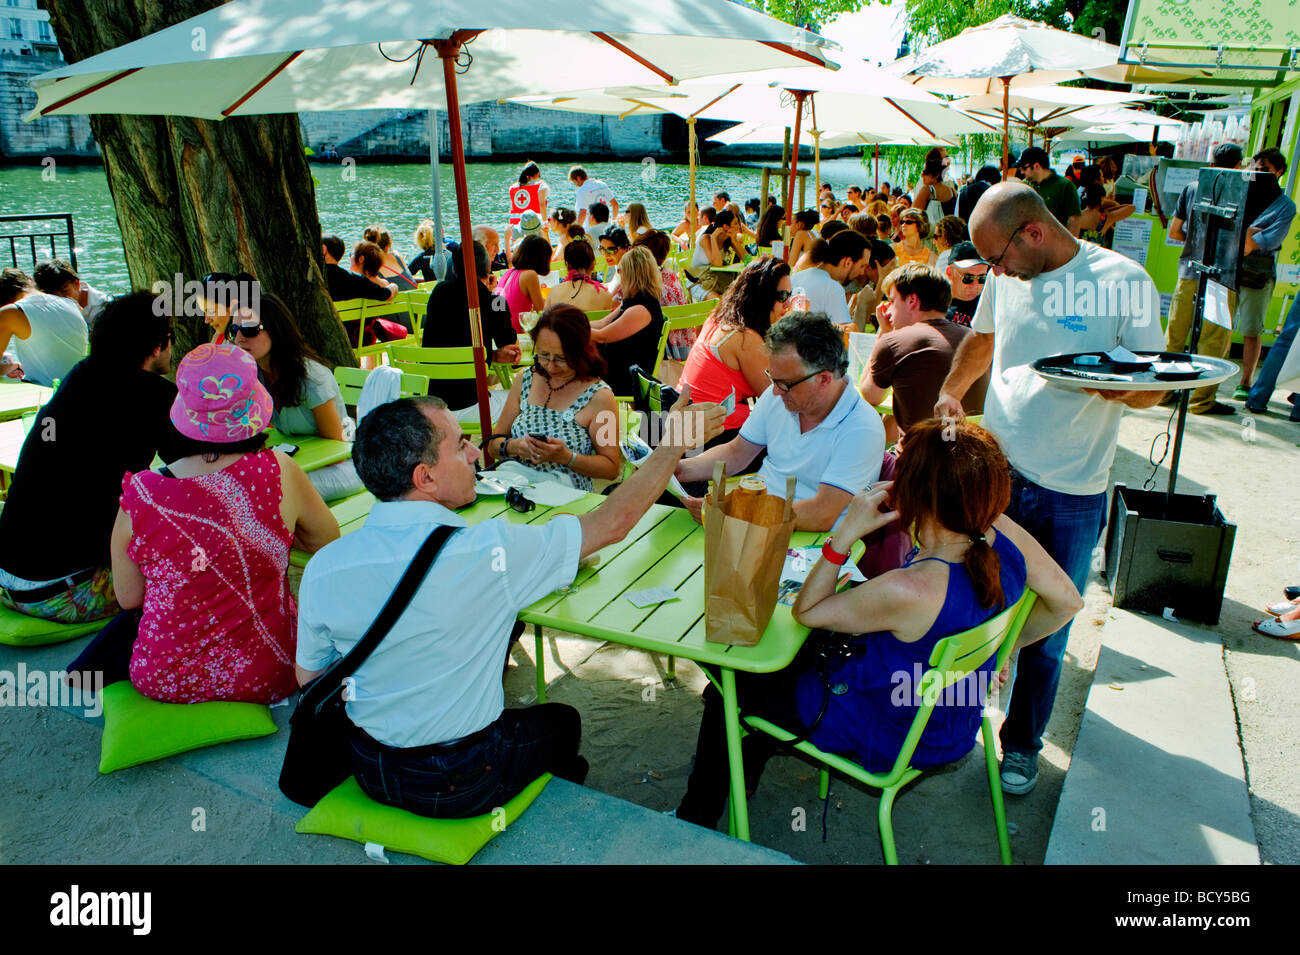 Paris France, Public Events, Crowd People Sharing Meals on Terrace French Bistro Restaurant on 'Seine River' - Stock Image